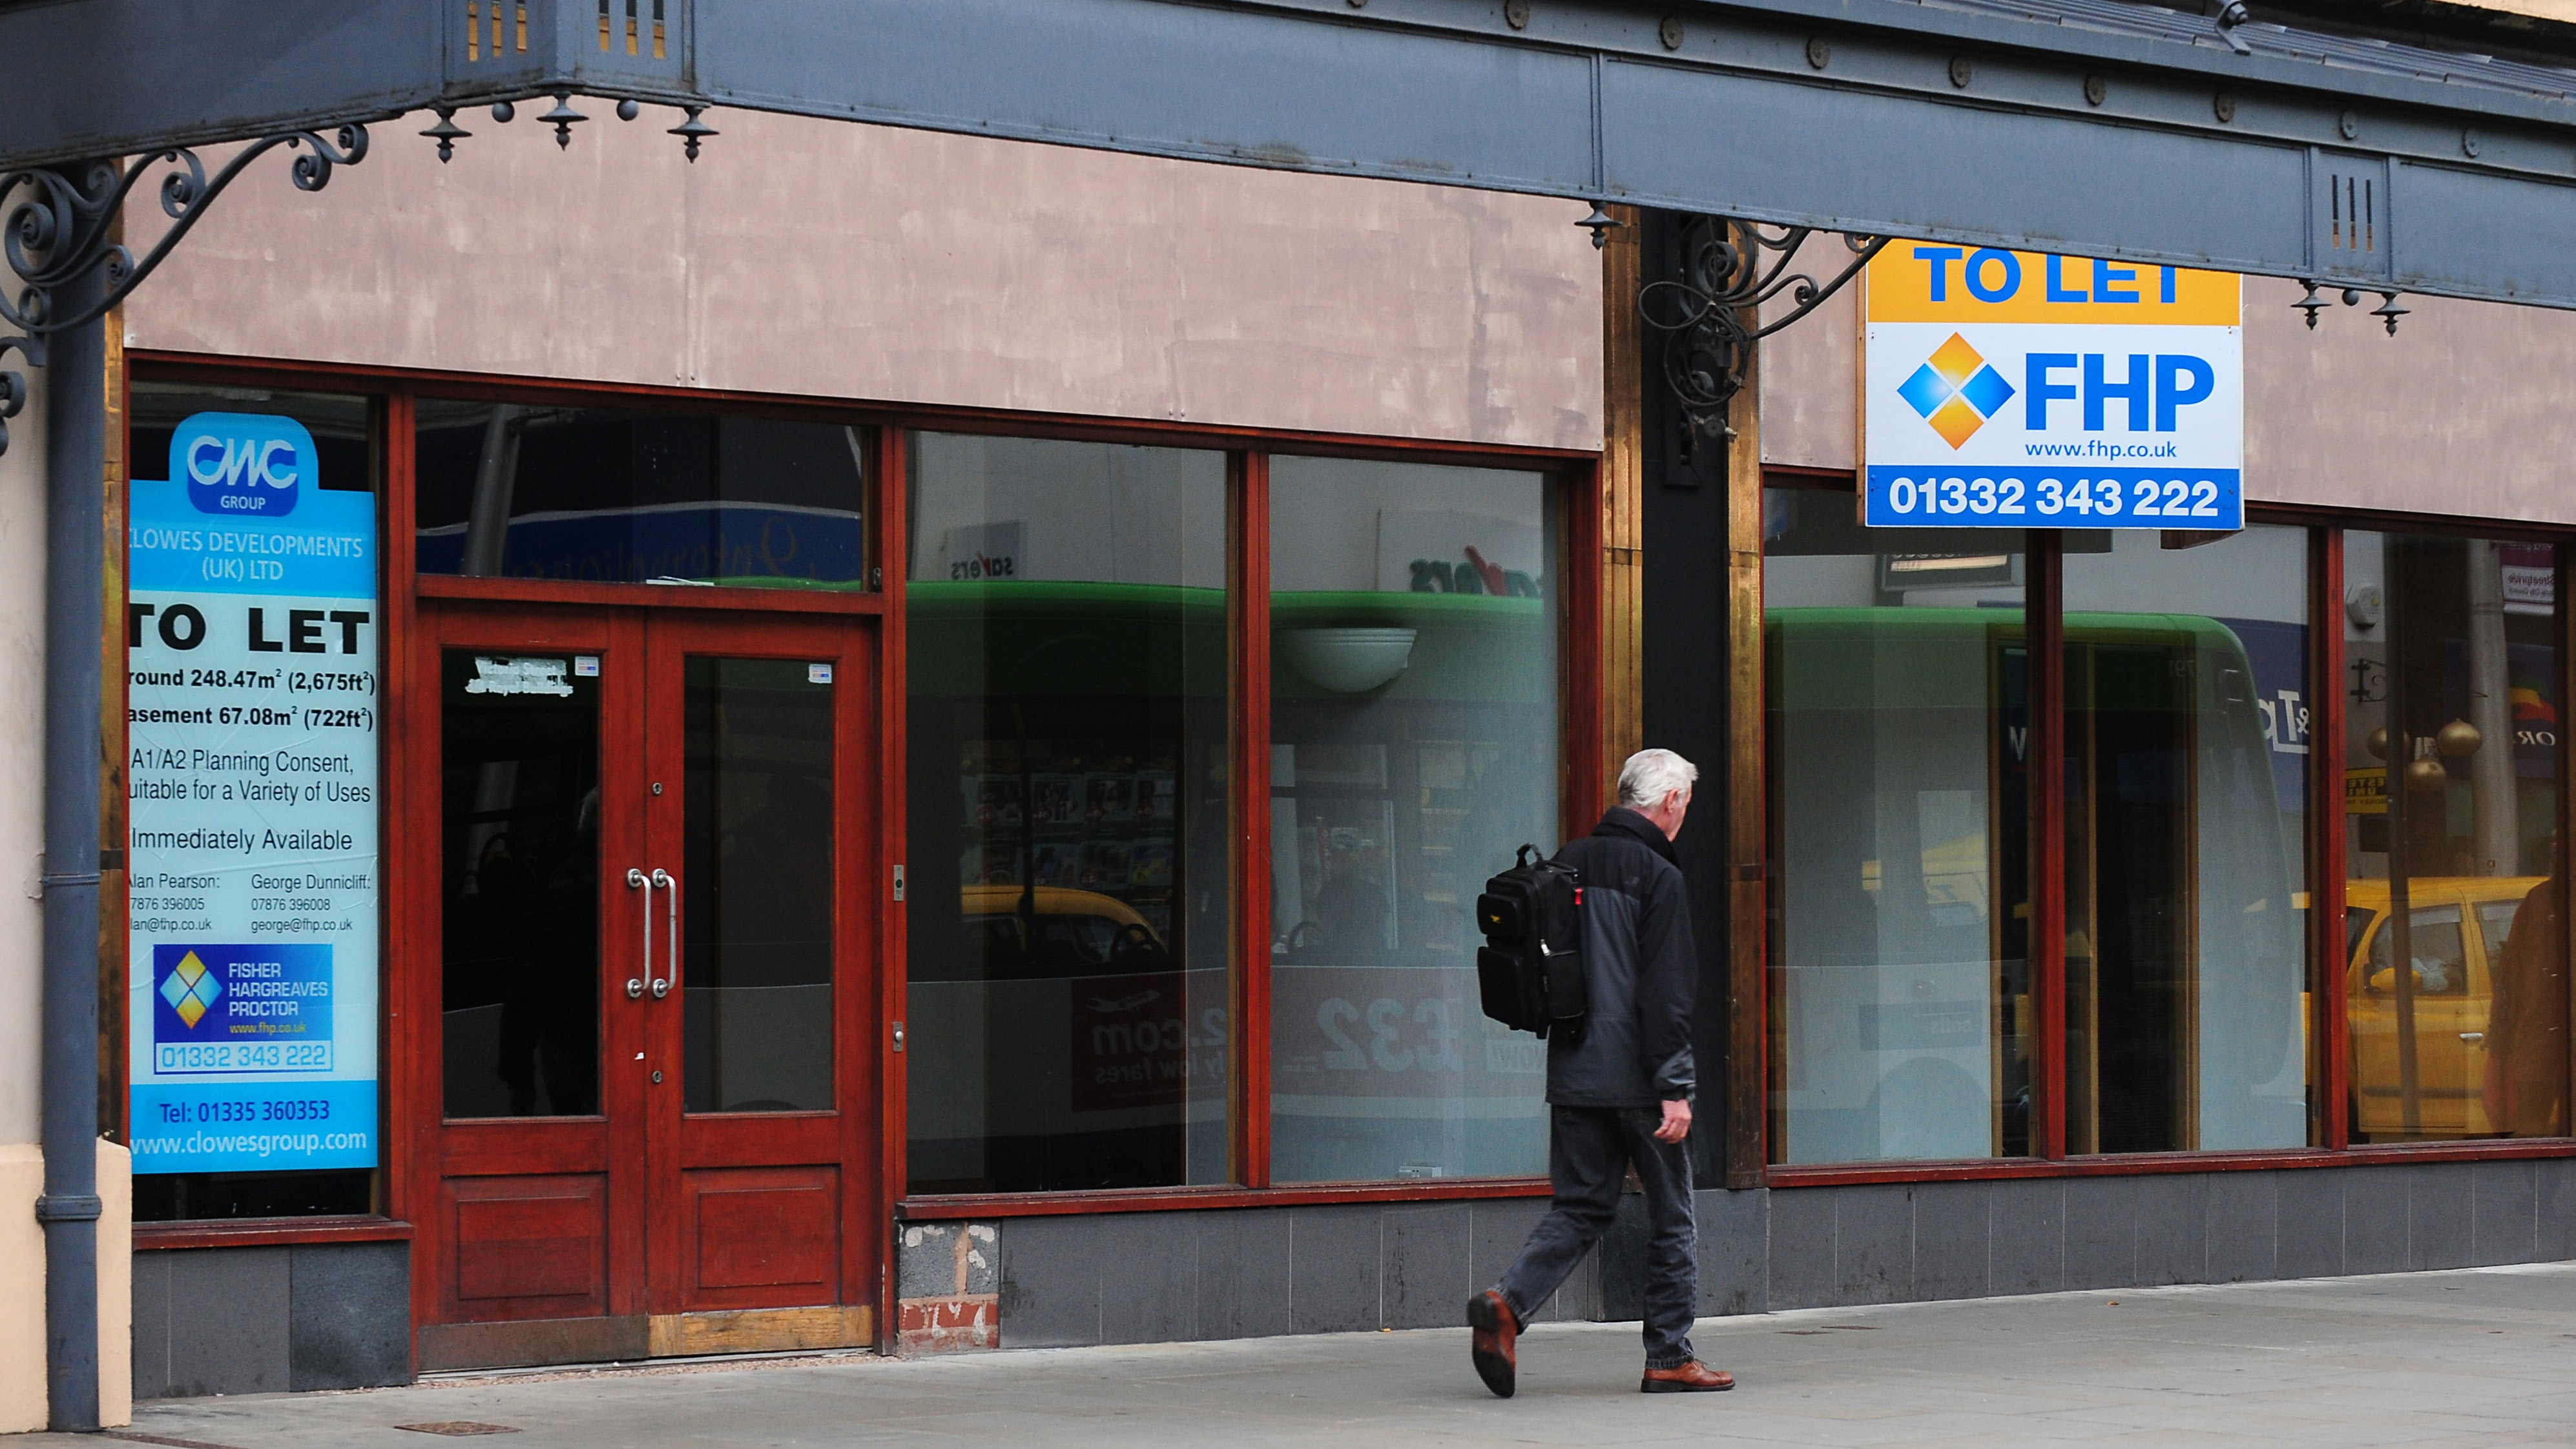 Shop vacancy rate in Britain's town centres hits highest level in